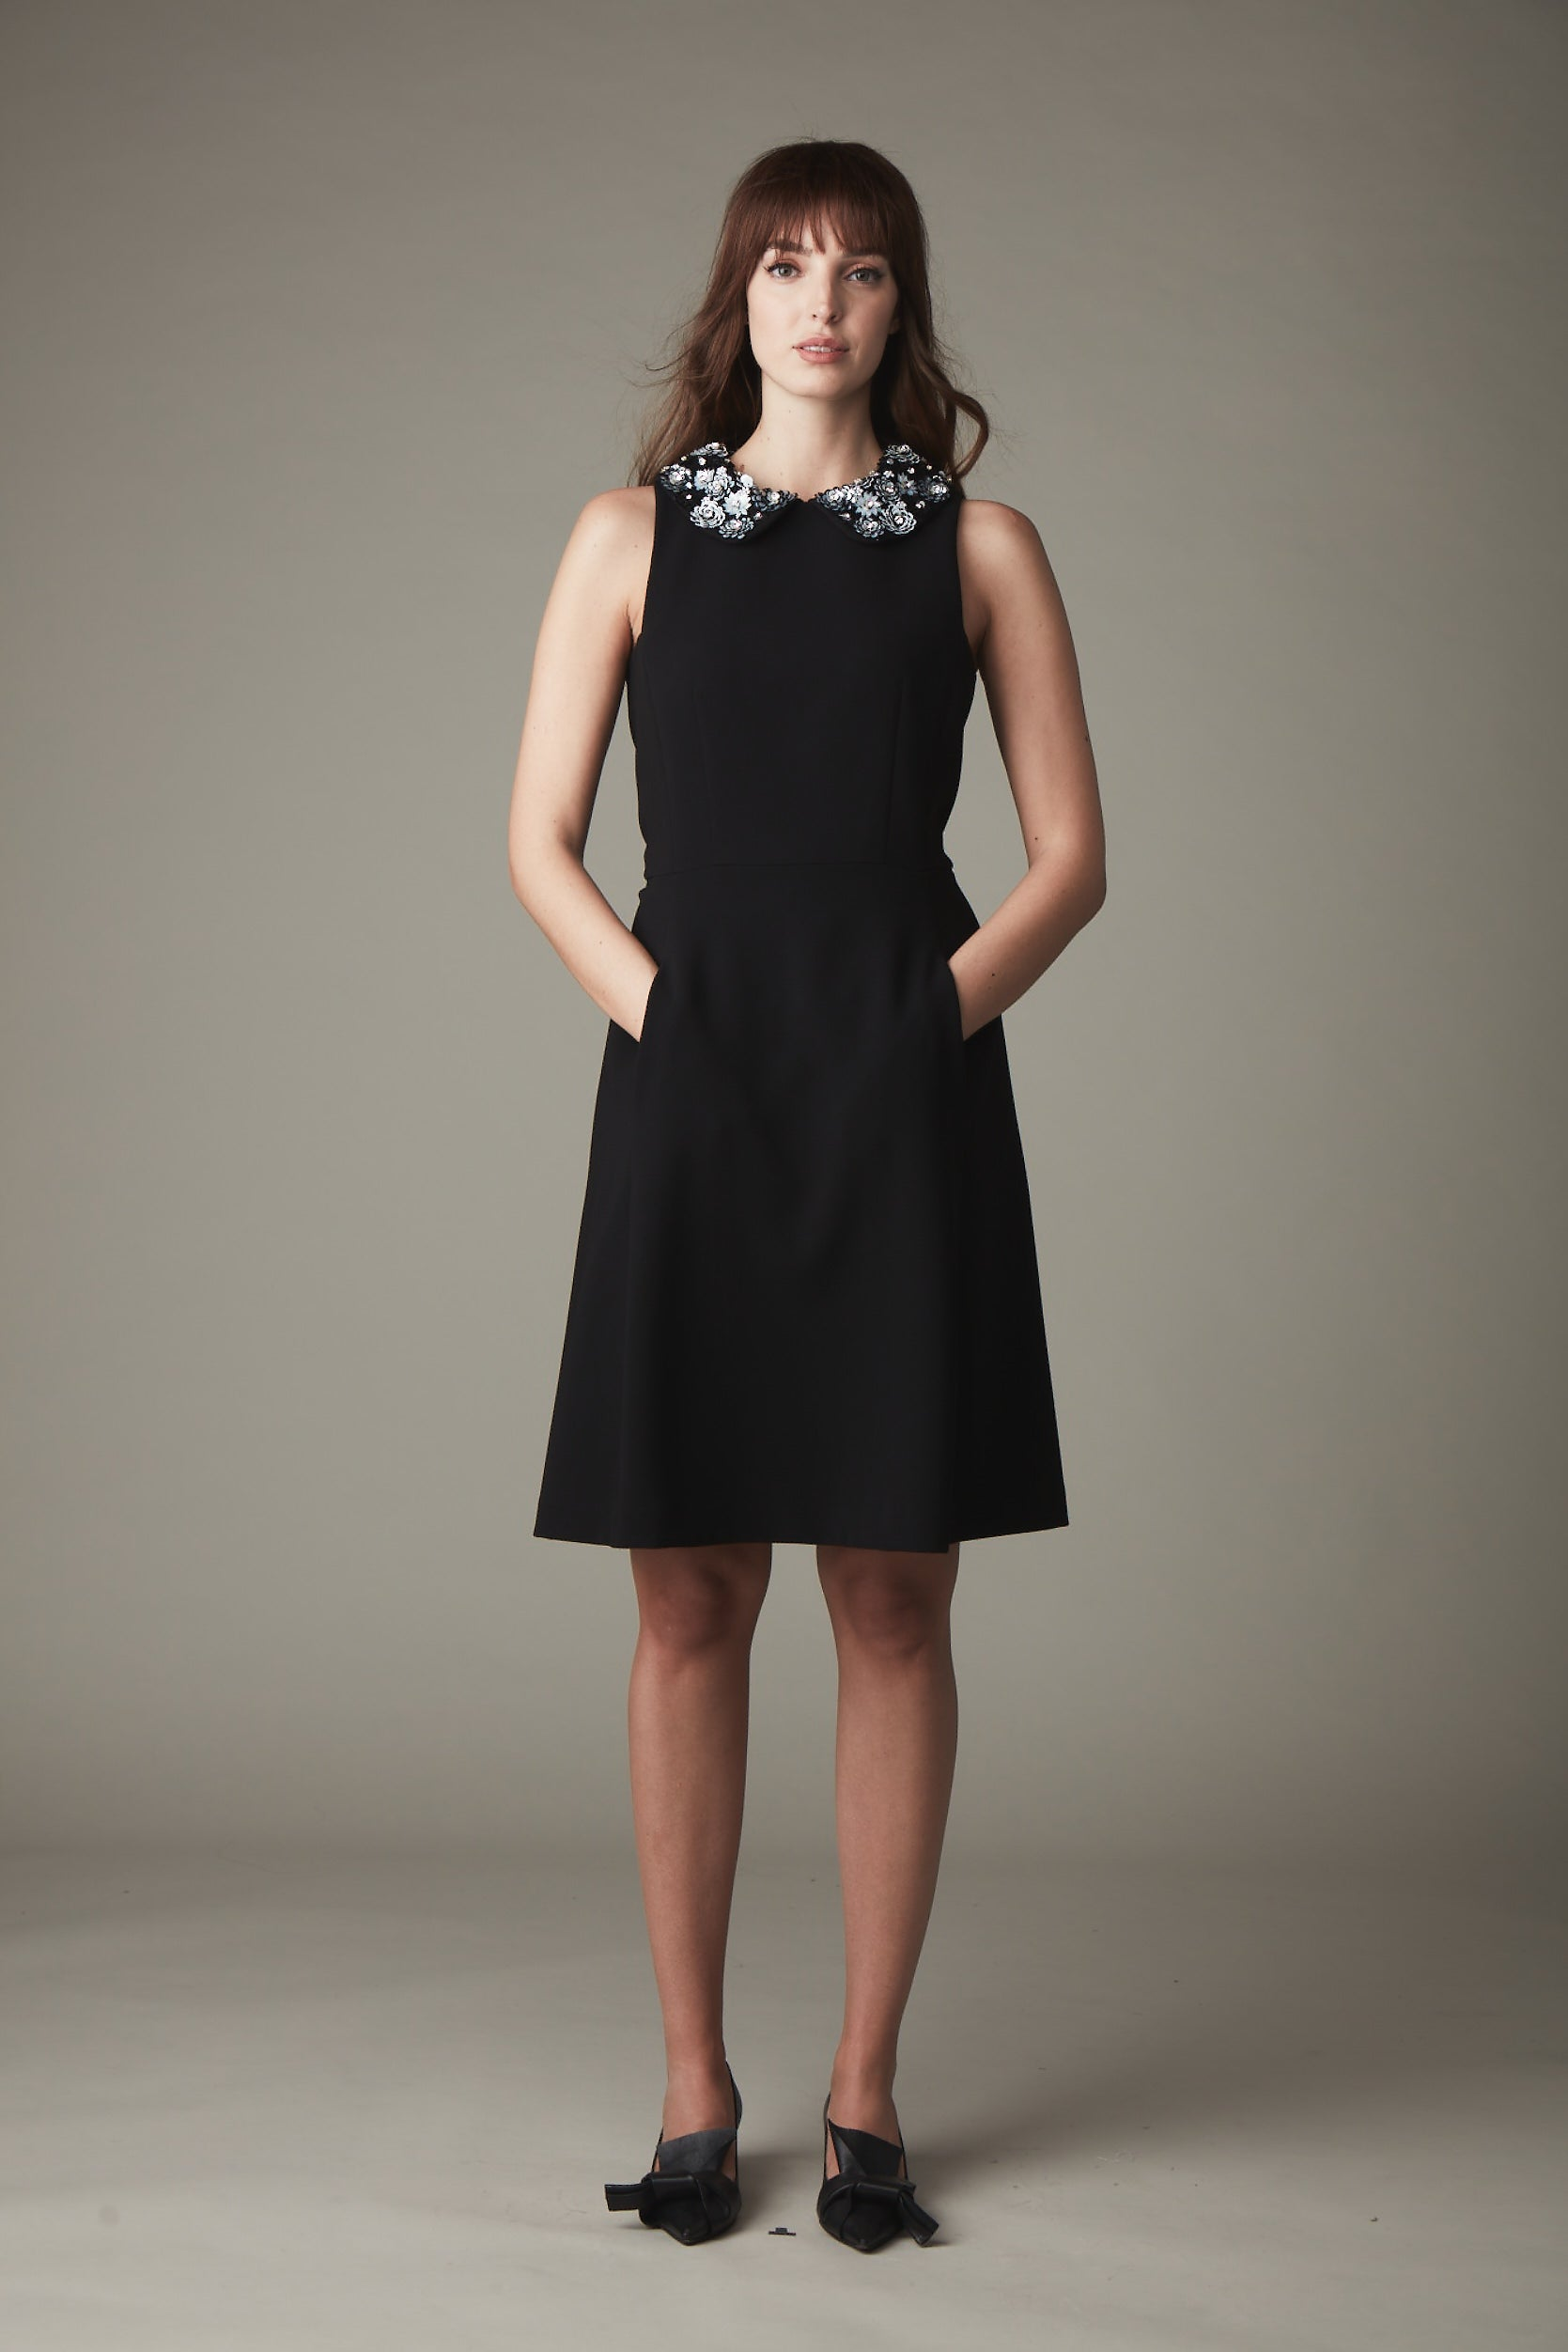 KN Sophia Collar Dress - Black